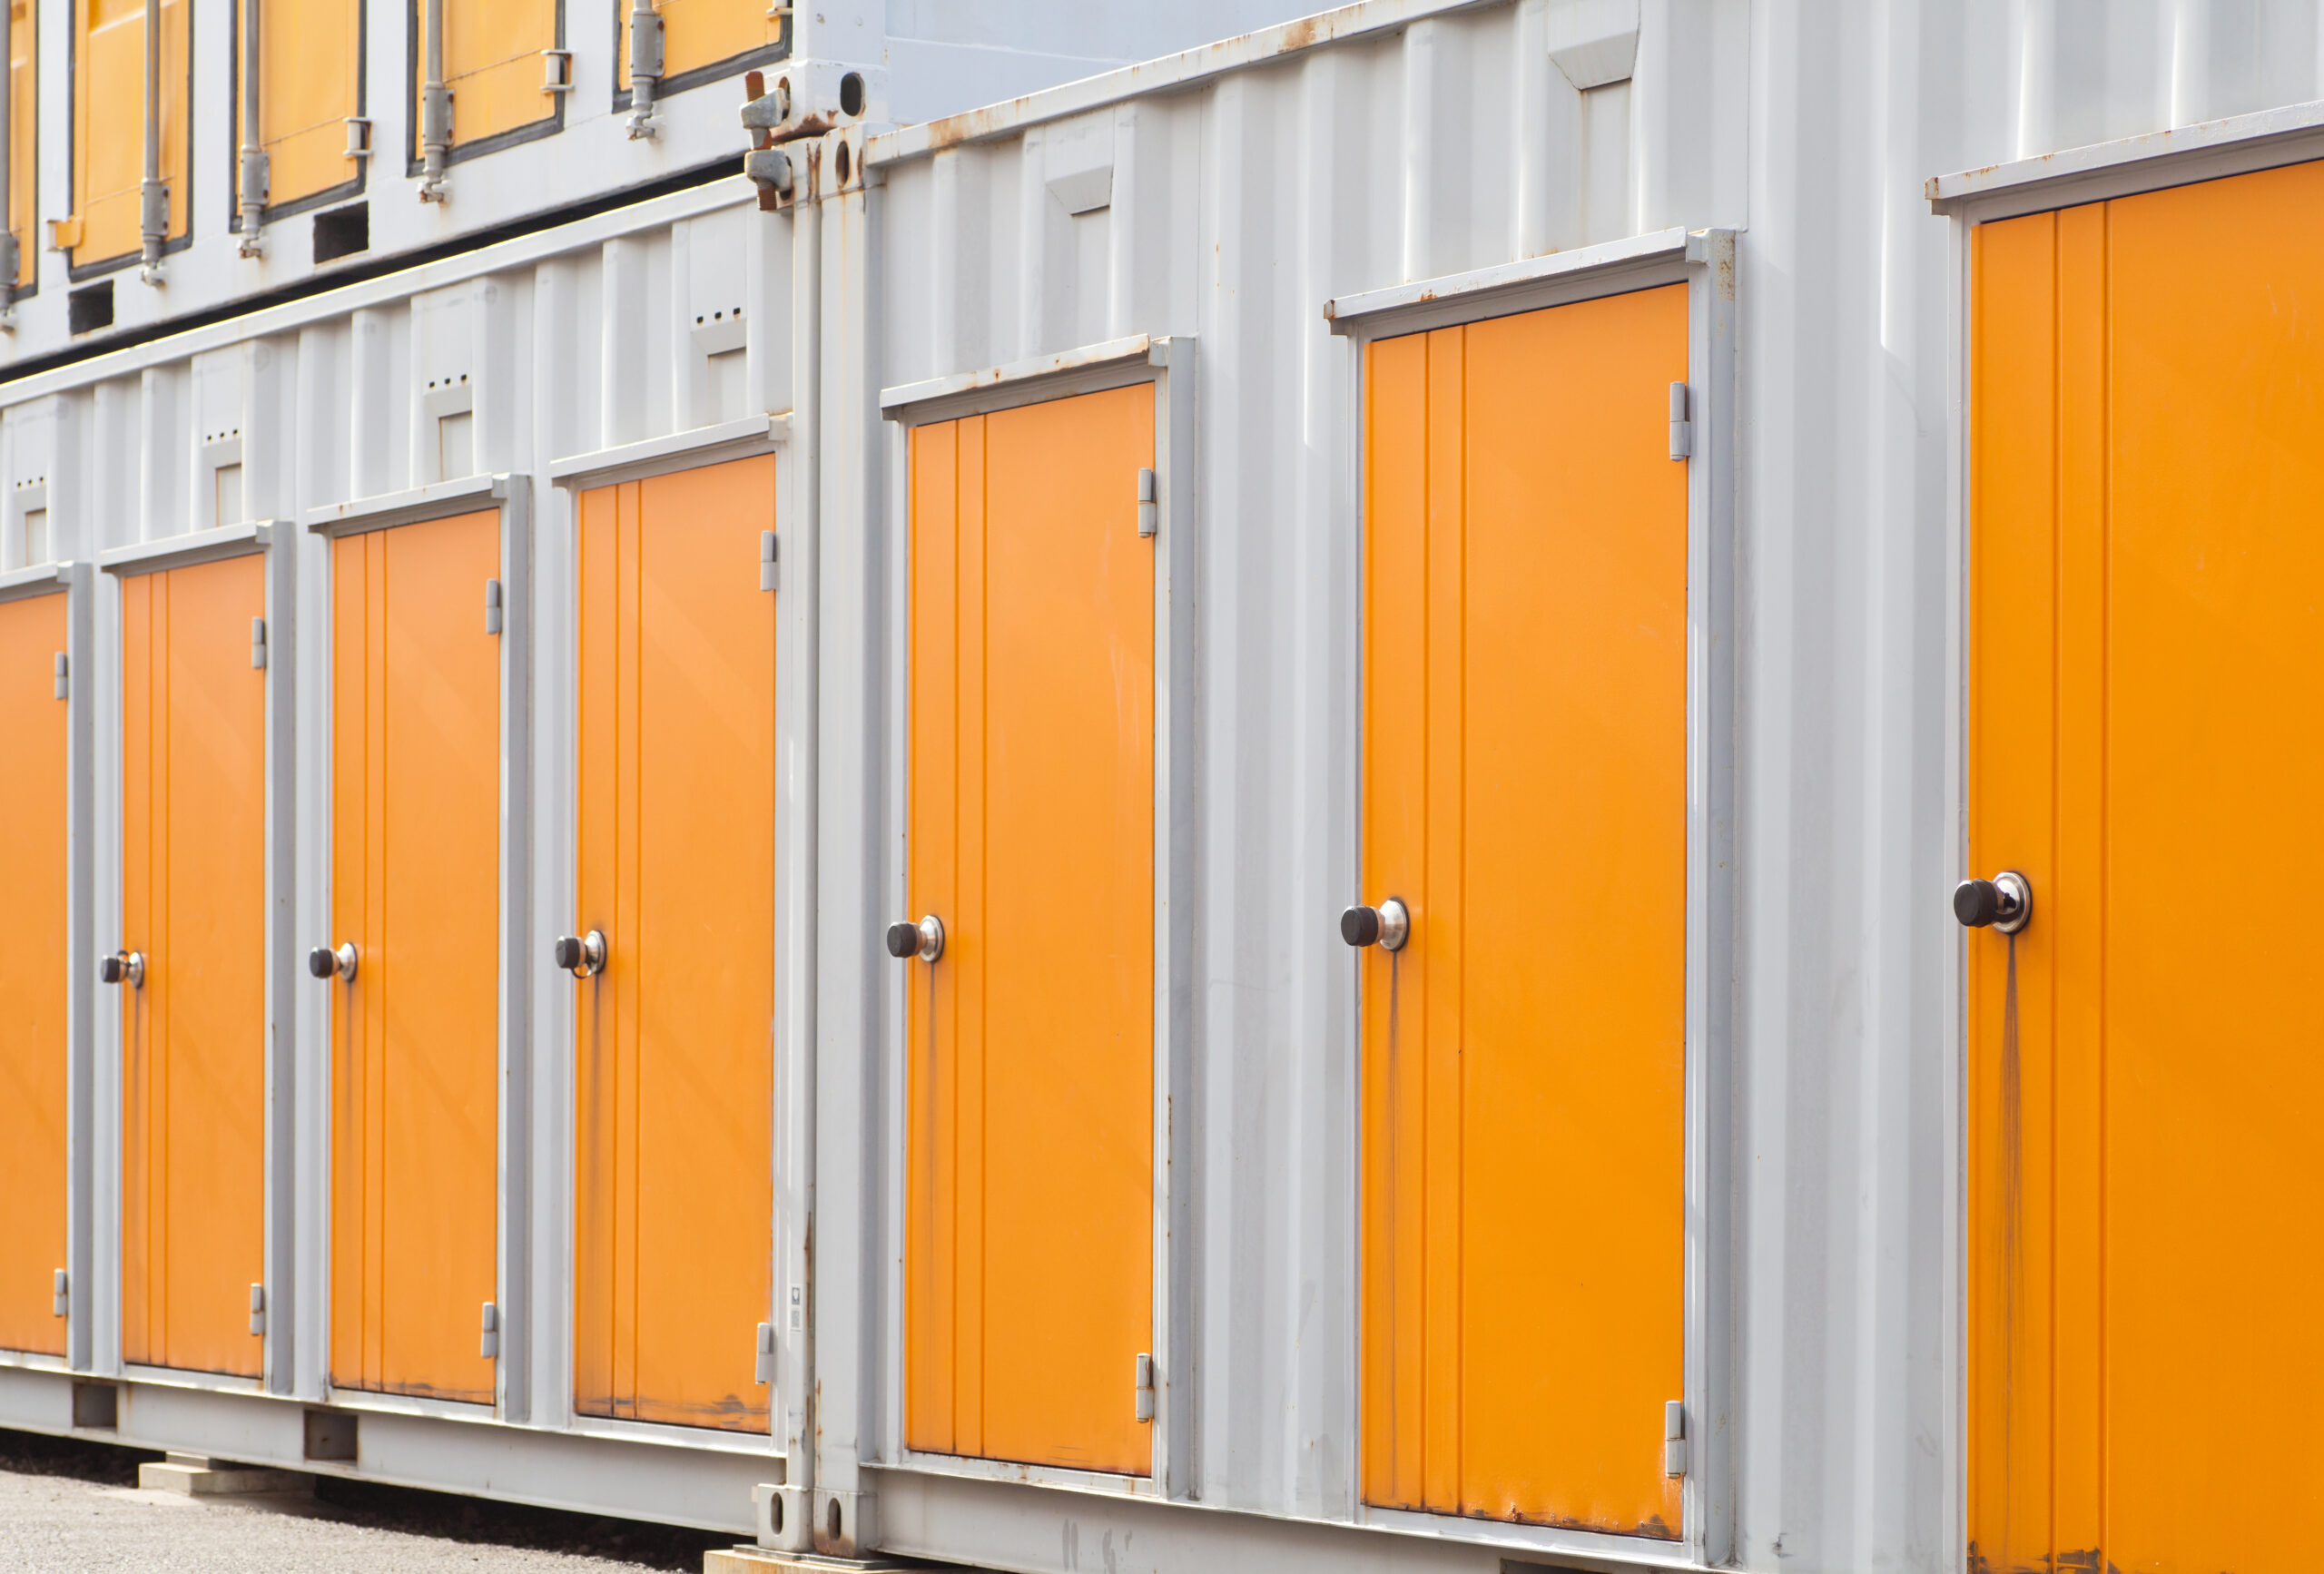 Storage units that are part of crates